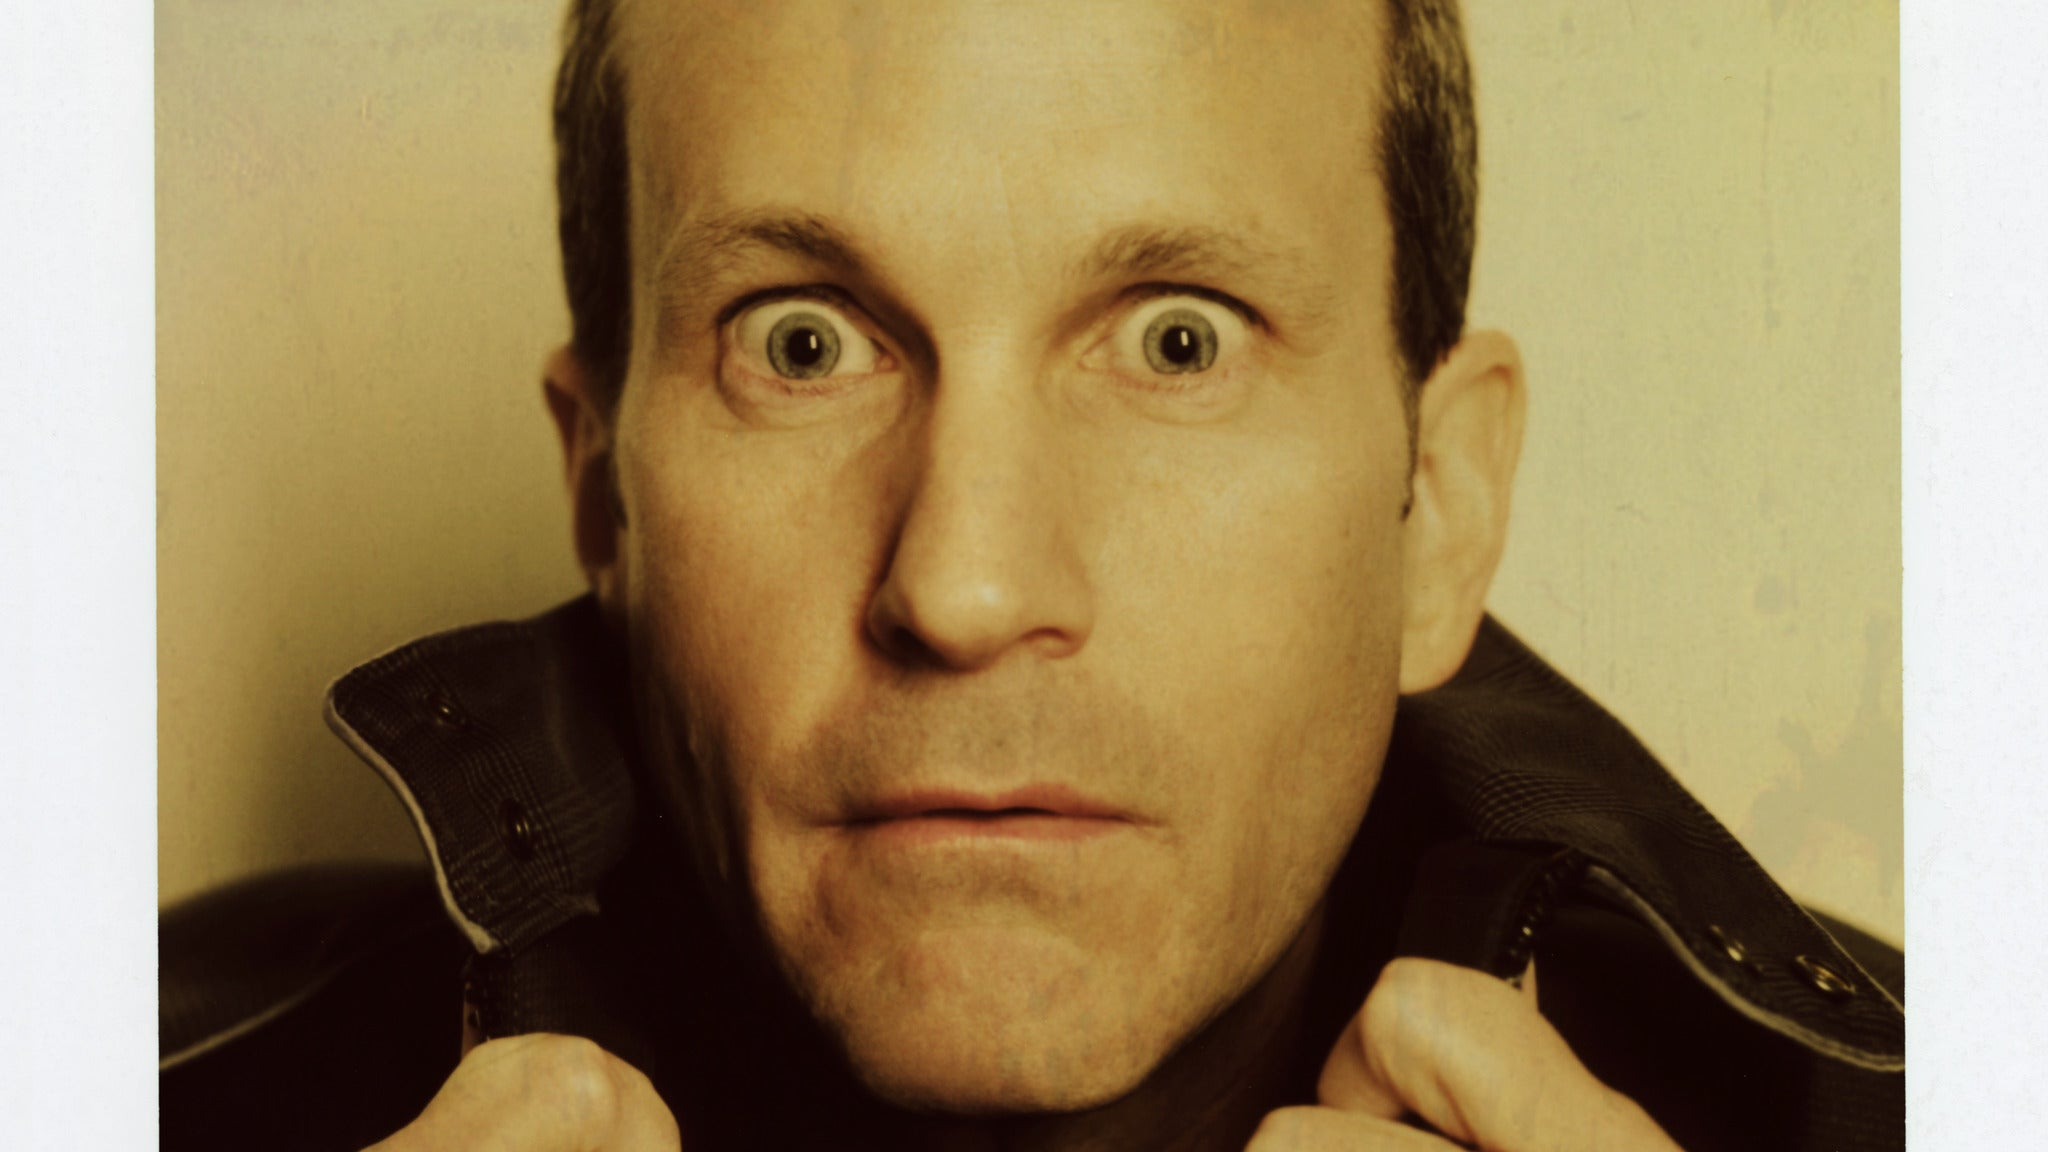 Jimmy Pardo at Brea Improv - Brea, CA 92821